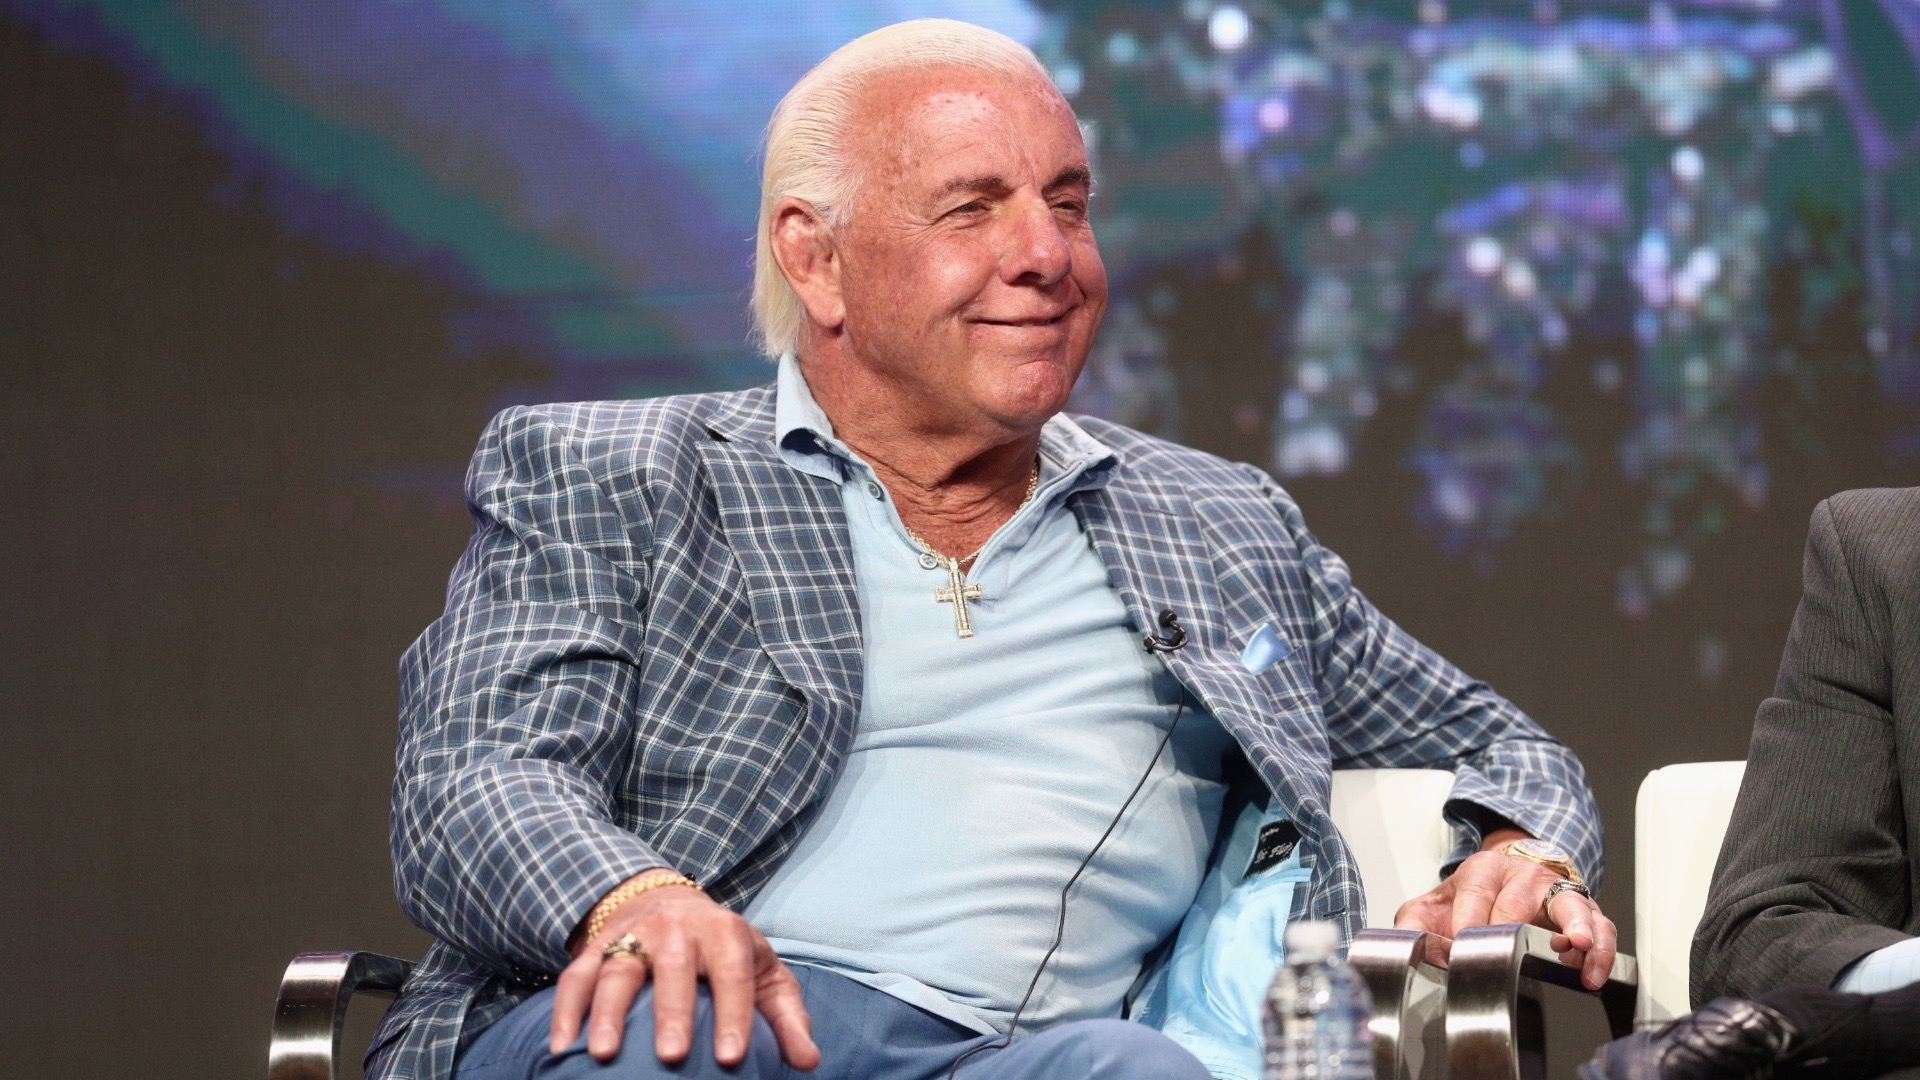 WWE legend Ric Flair